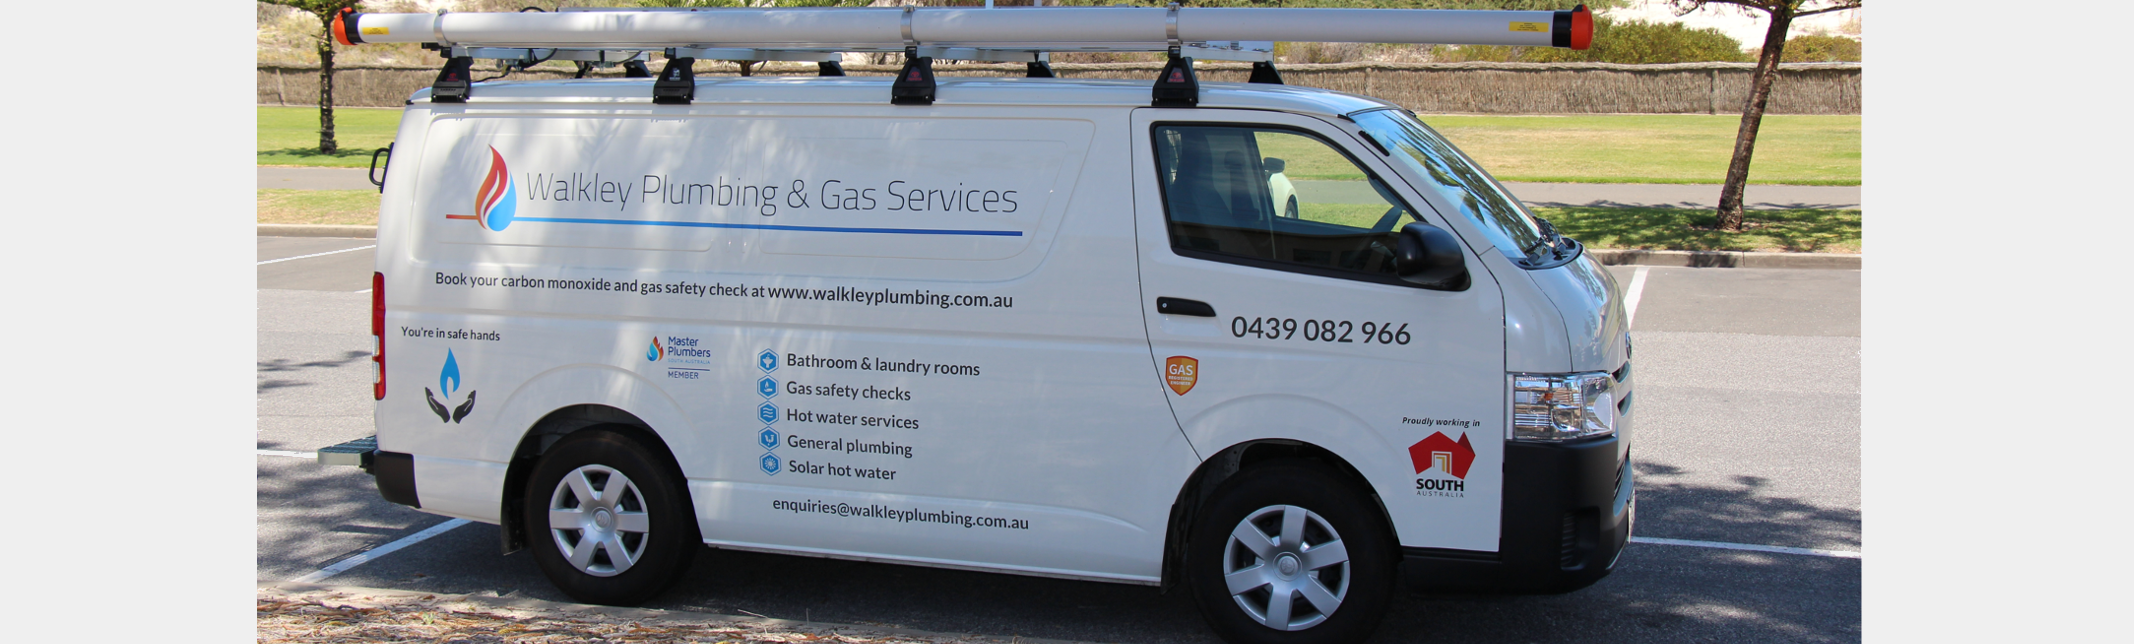 Welcome to Walkley Plumbing & Gas Services